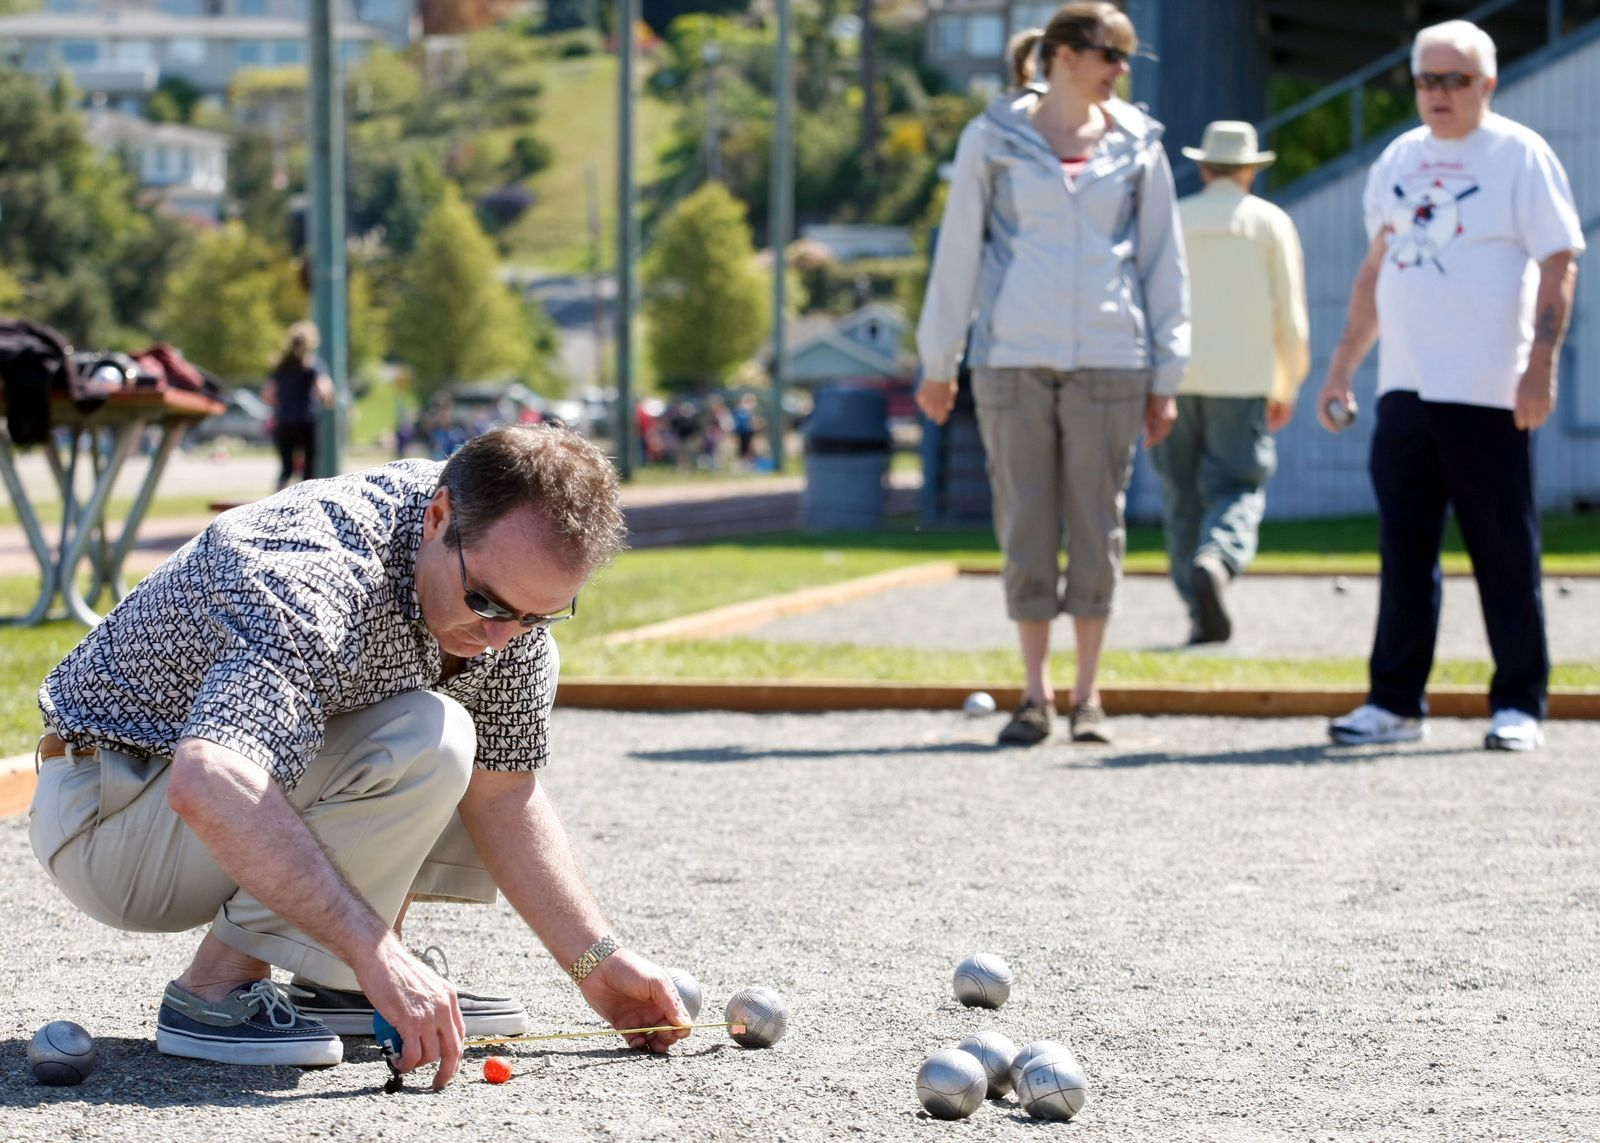 Ever heard of petanque? It's an outdoor game played in France, but you can give it a try in Edmonds.